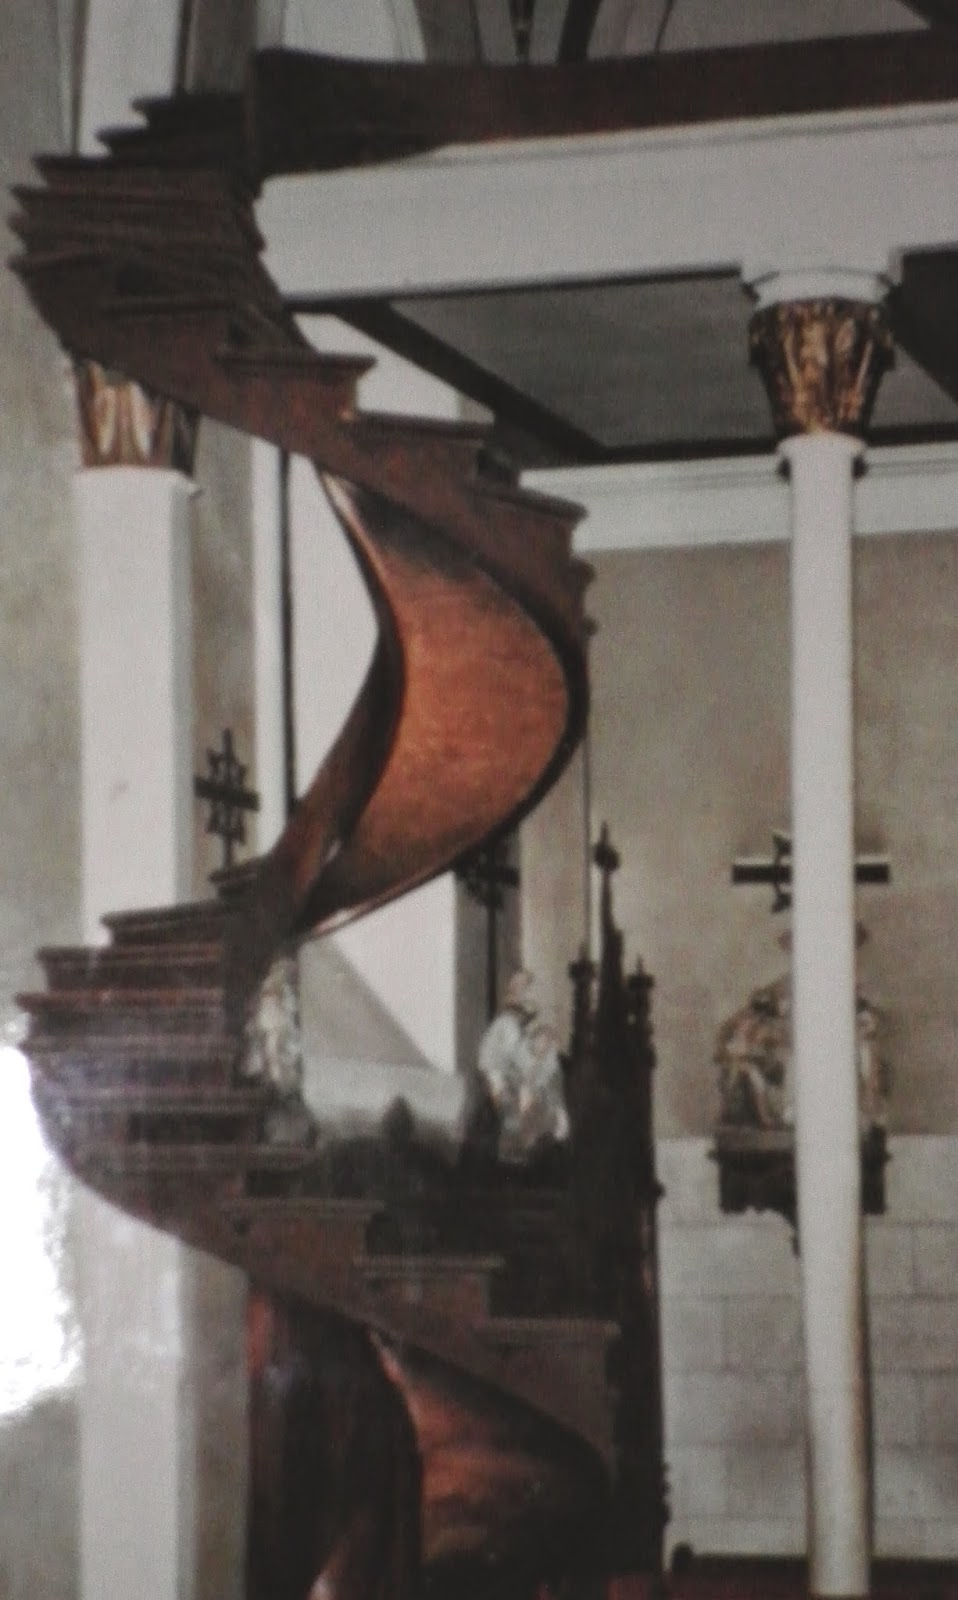 Picture Of A Picture Of The Staircase Without Rails